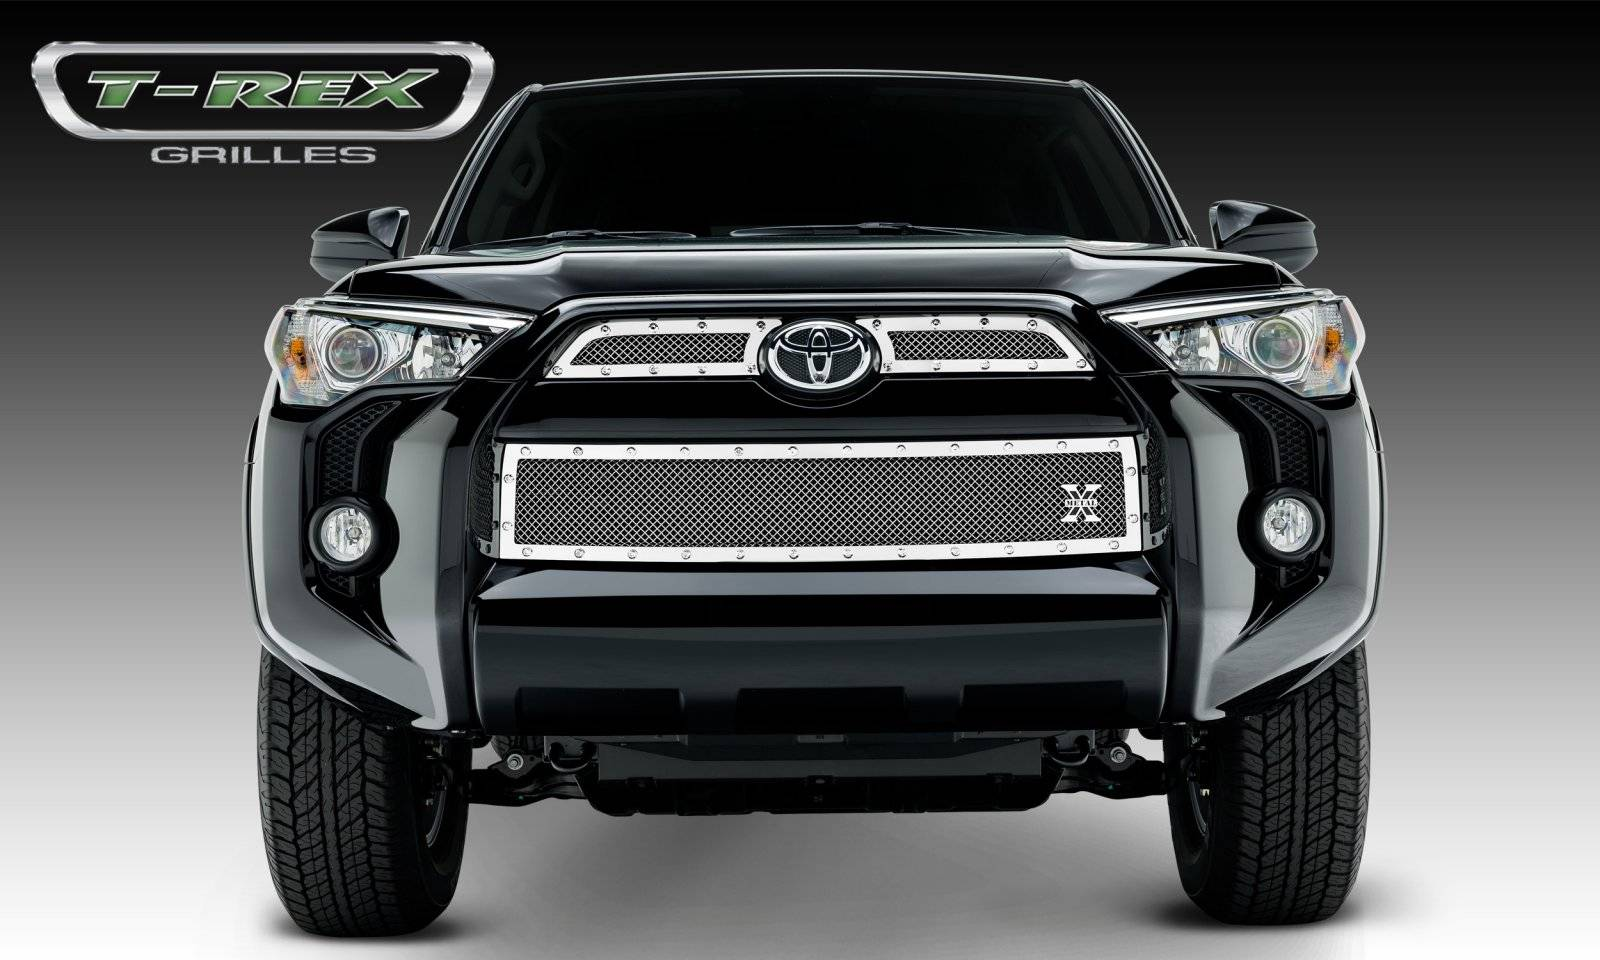 Toyota 4 Runner X-Metal, Formed Mesh Grille, Main & Bumper Kit, Overlay, 3 Pc's, Polished Stainless Steel - Pt # 6719490